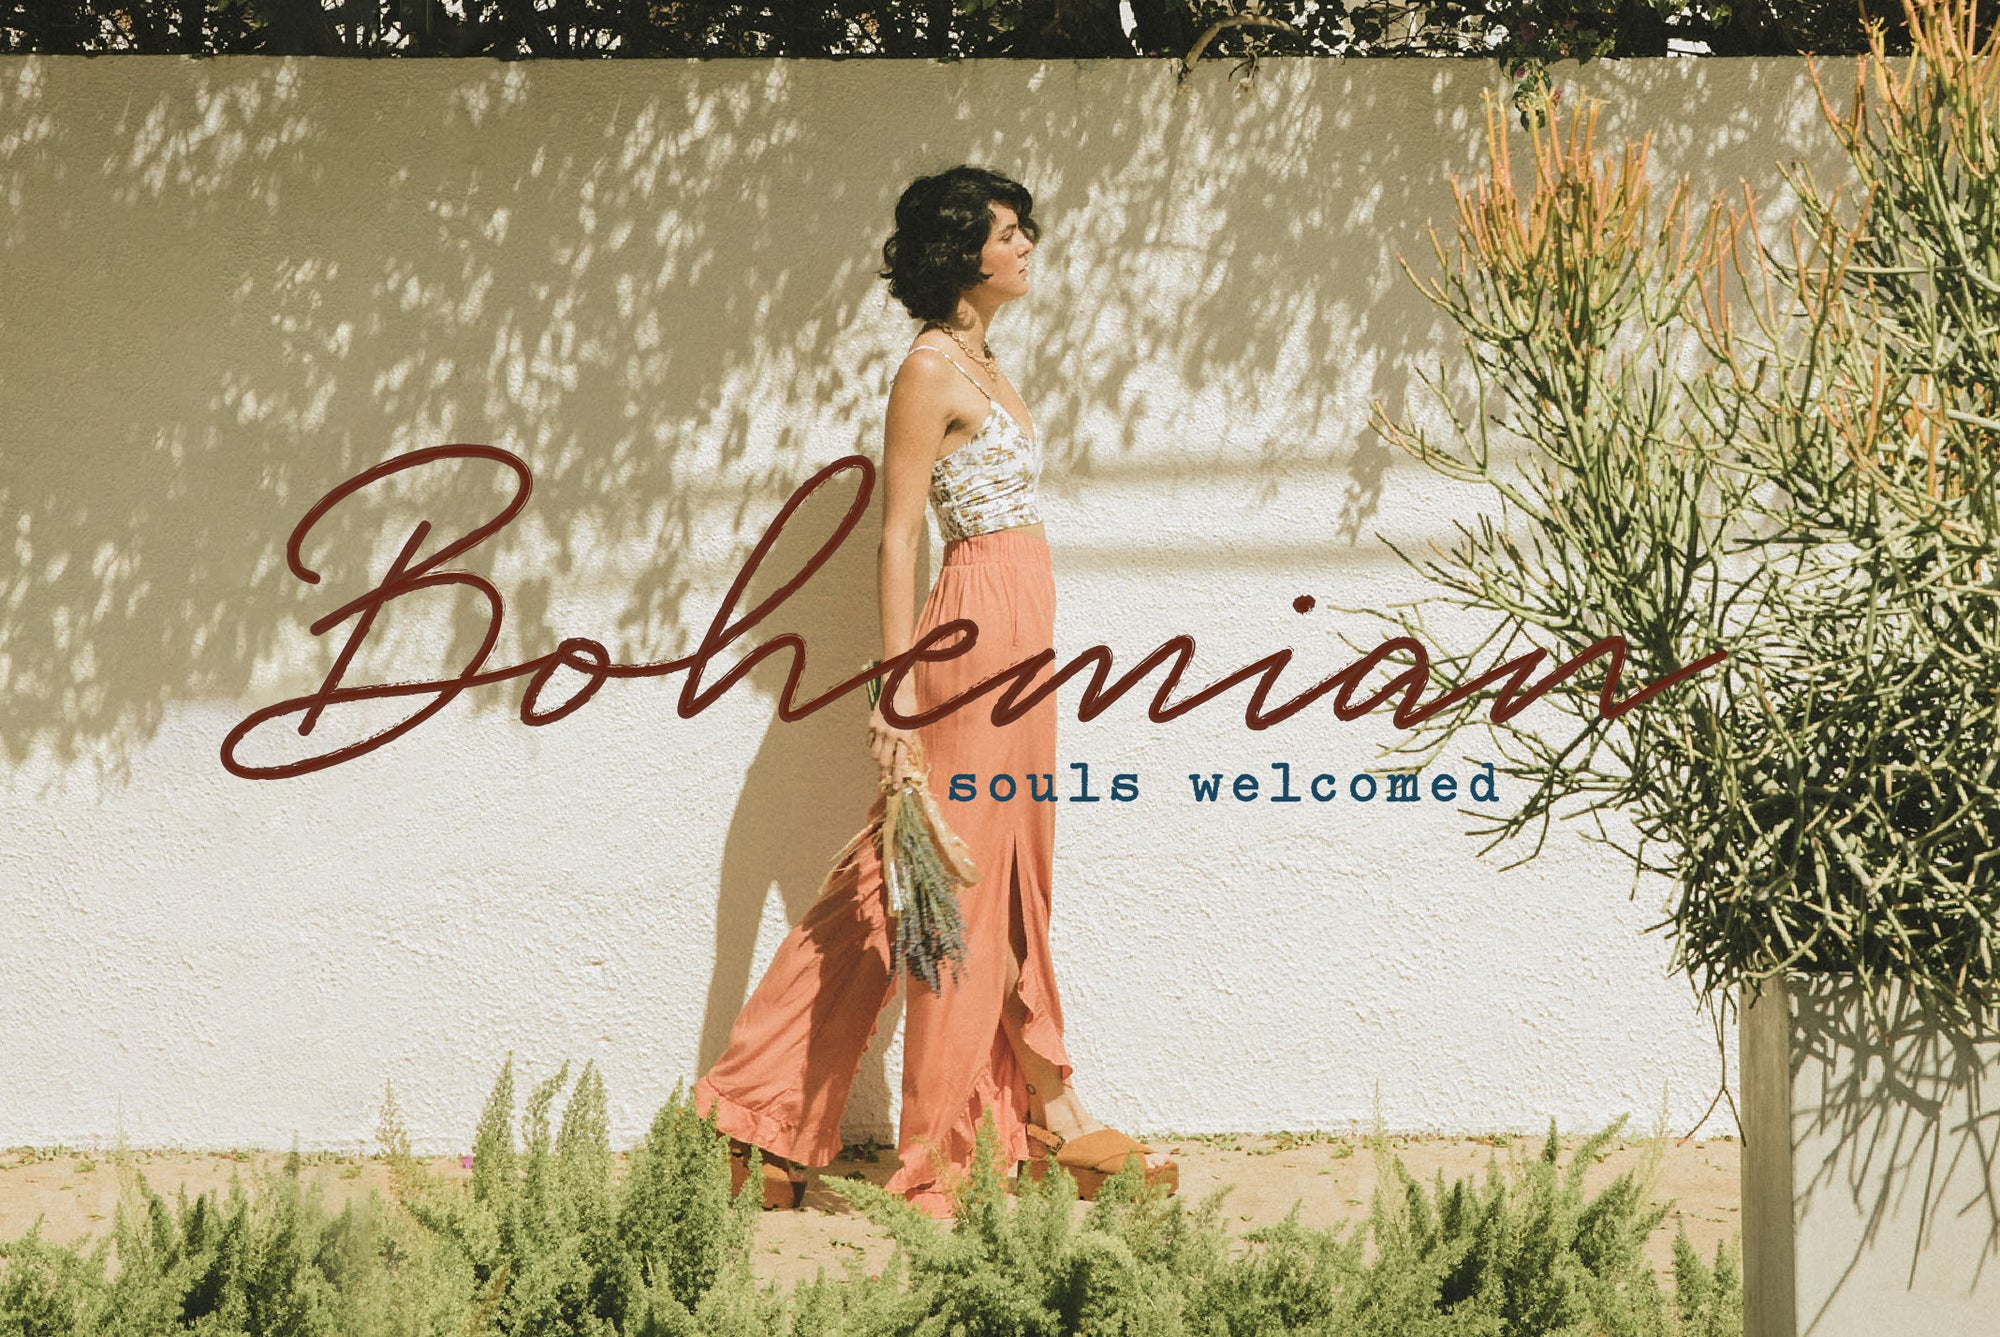 Collection: Bohemian Souls Welcomed